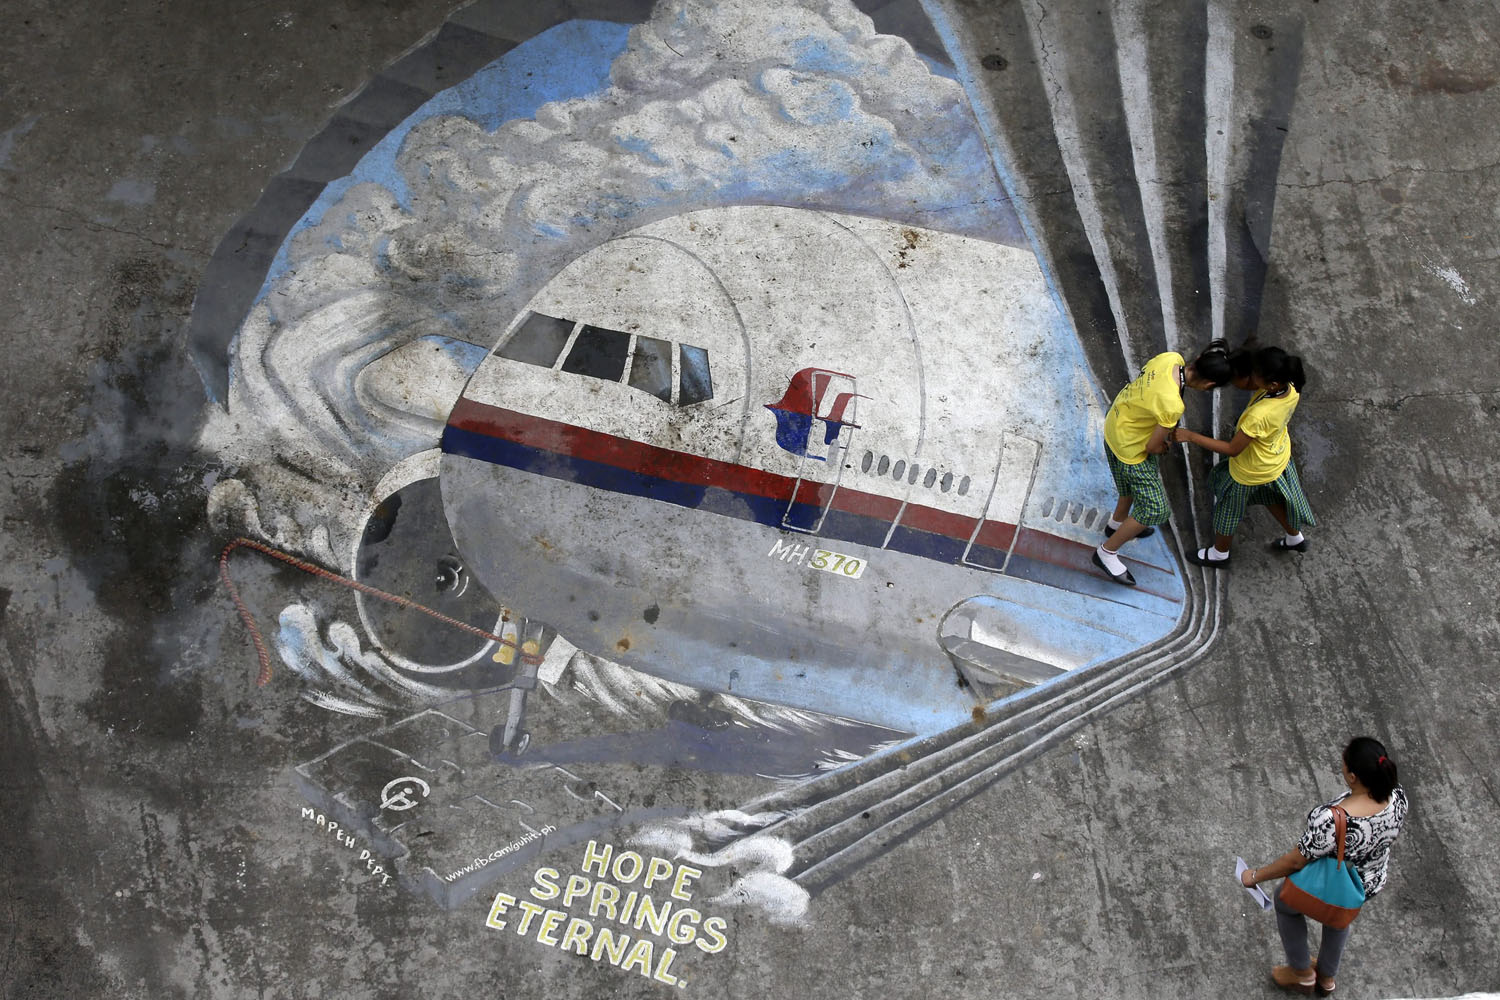 Mar. 25, 2014. Pupils of Benigno Ninoy Aquino High School stand on a painting of Malaysia Airlines Flight MH370 at the school grounds in Makati City, south of Manila, Philippines, Filipino artists painted the image to express hope and solidarity for the passengers and crew of the missing flight.